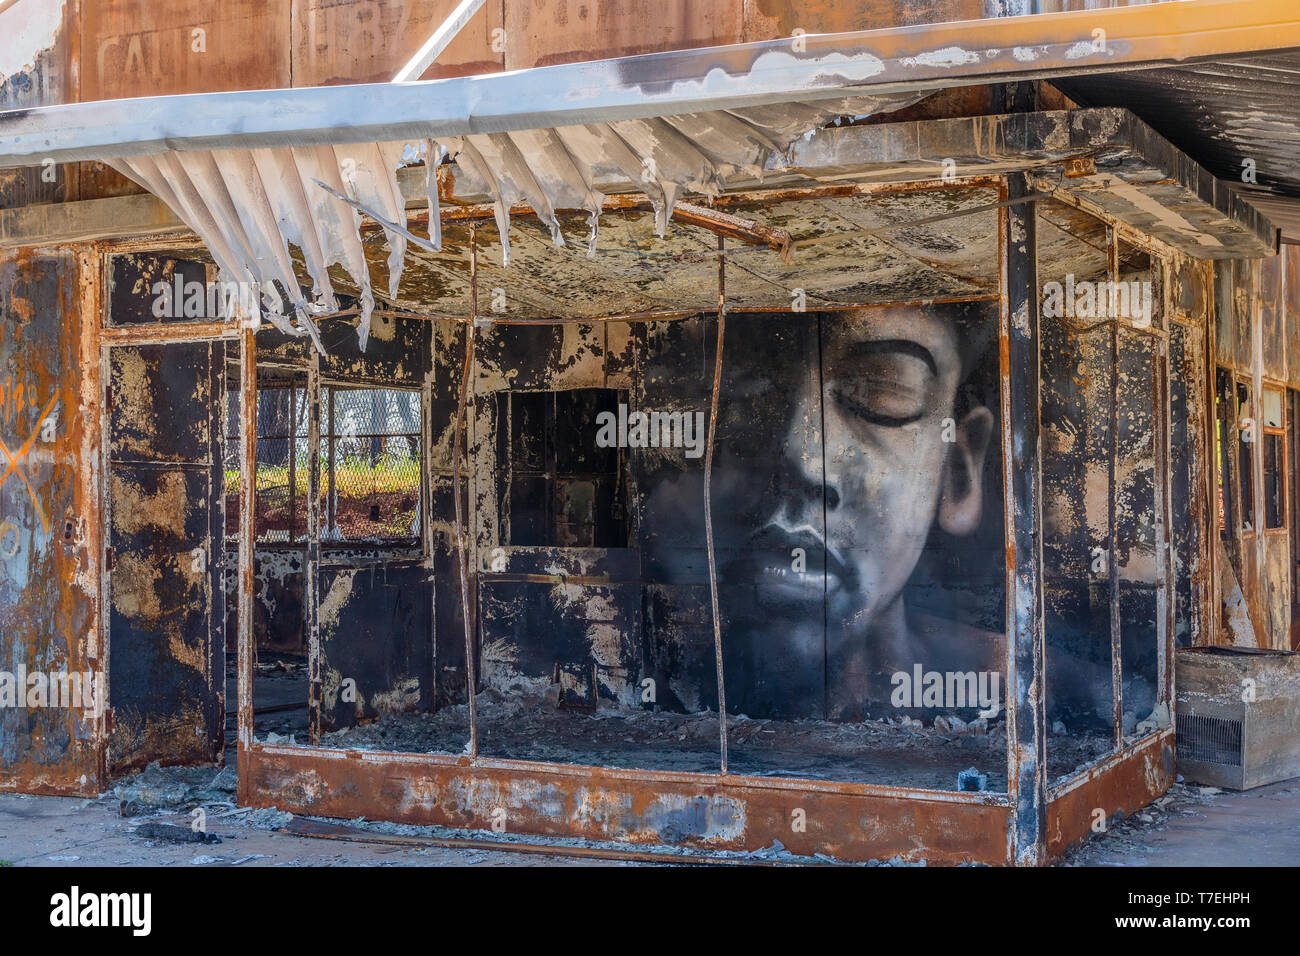 A building gutted by wildfire has a large face painted on an inside wall, looking out to the street, in the town of Paradise, California the site of t - Stock Image